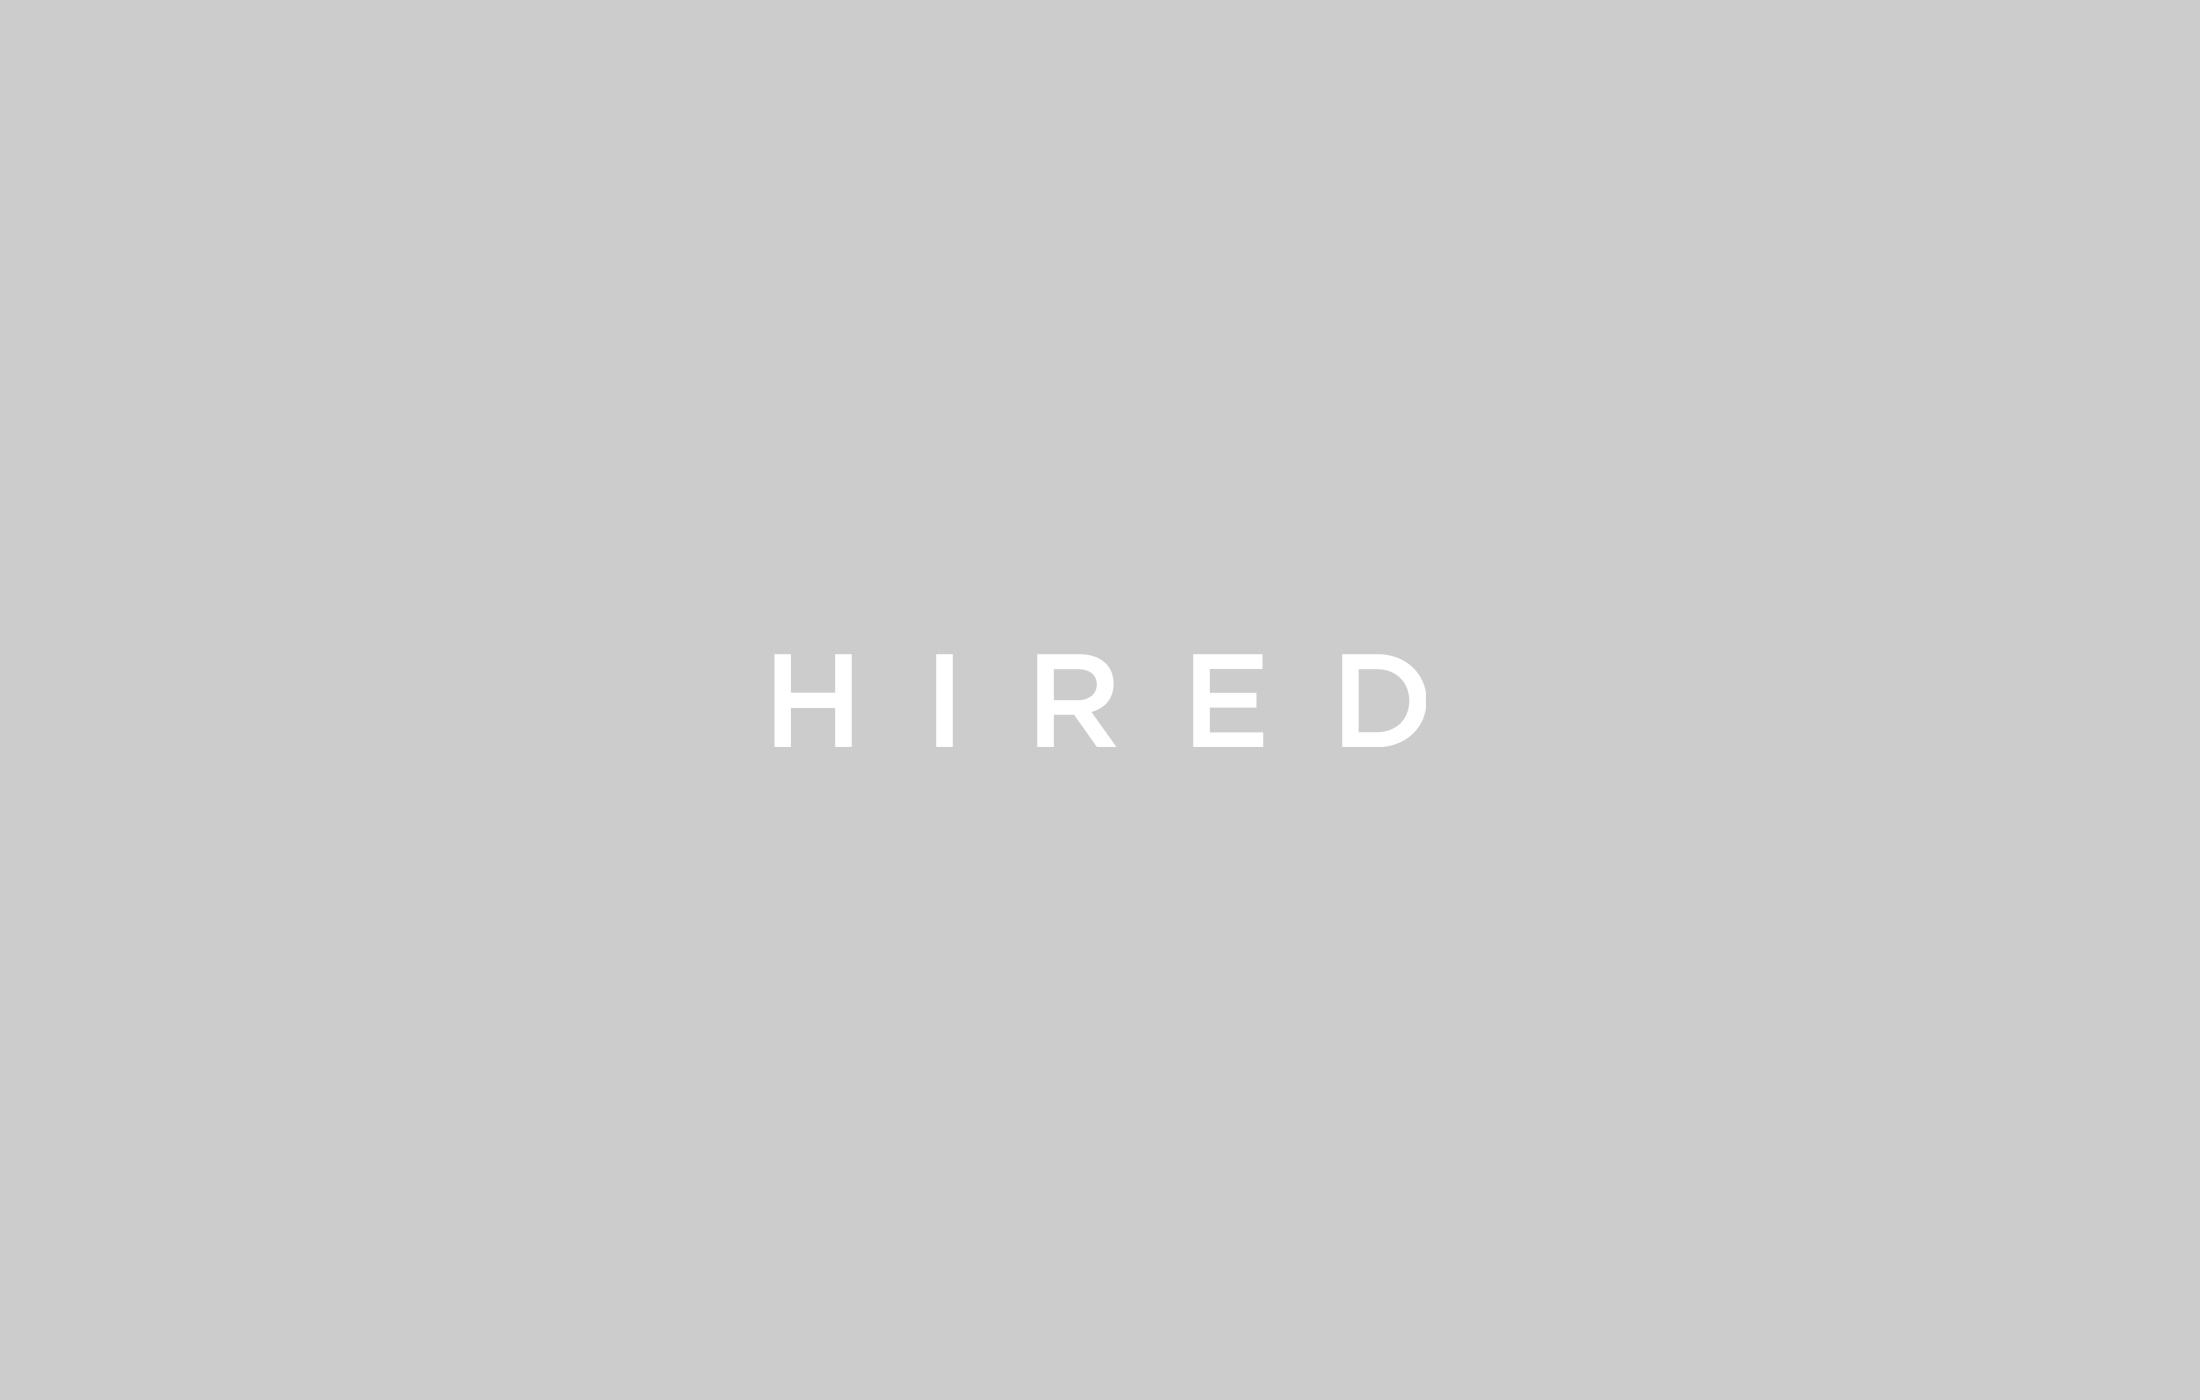 hired-announces-30m-in-new-funding